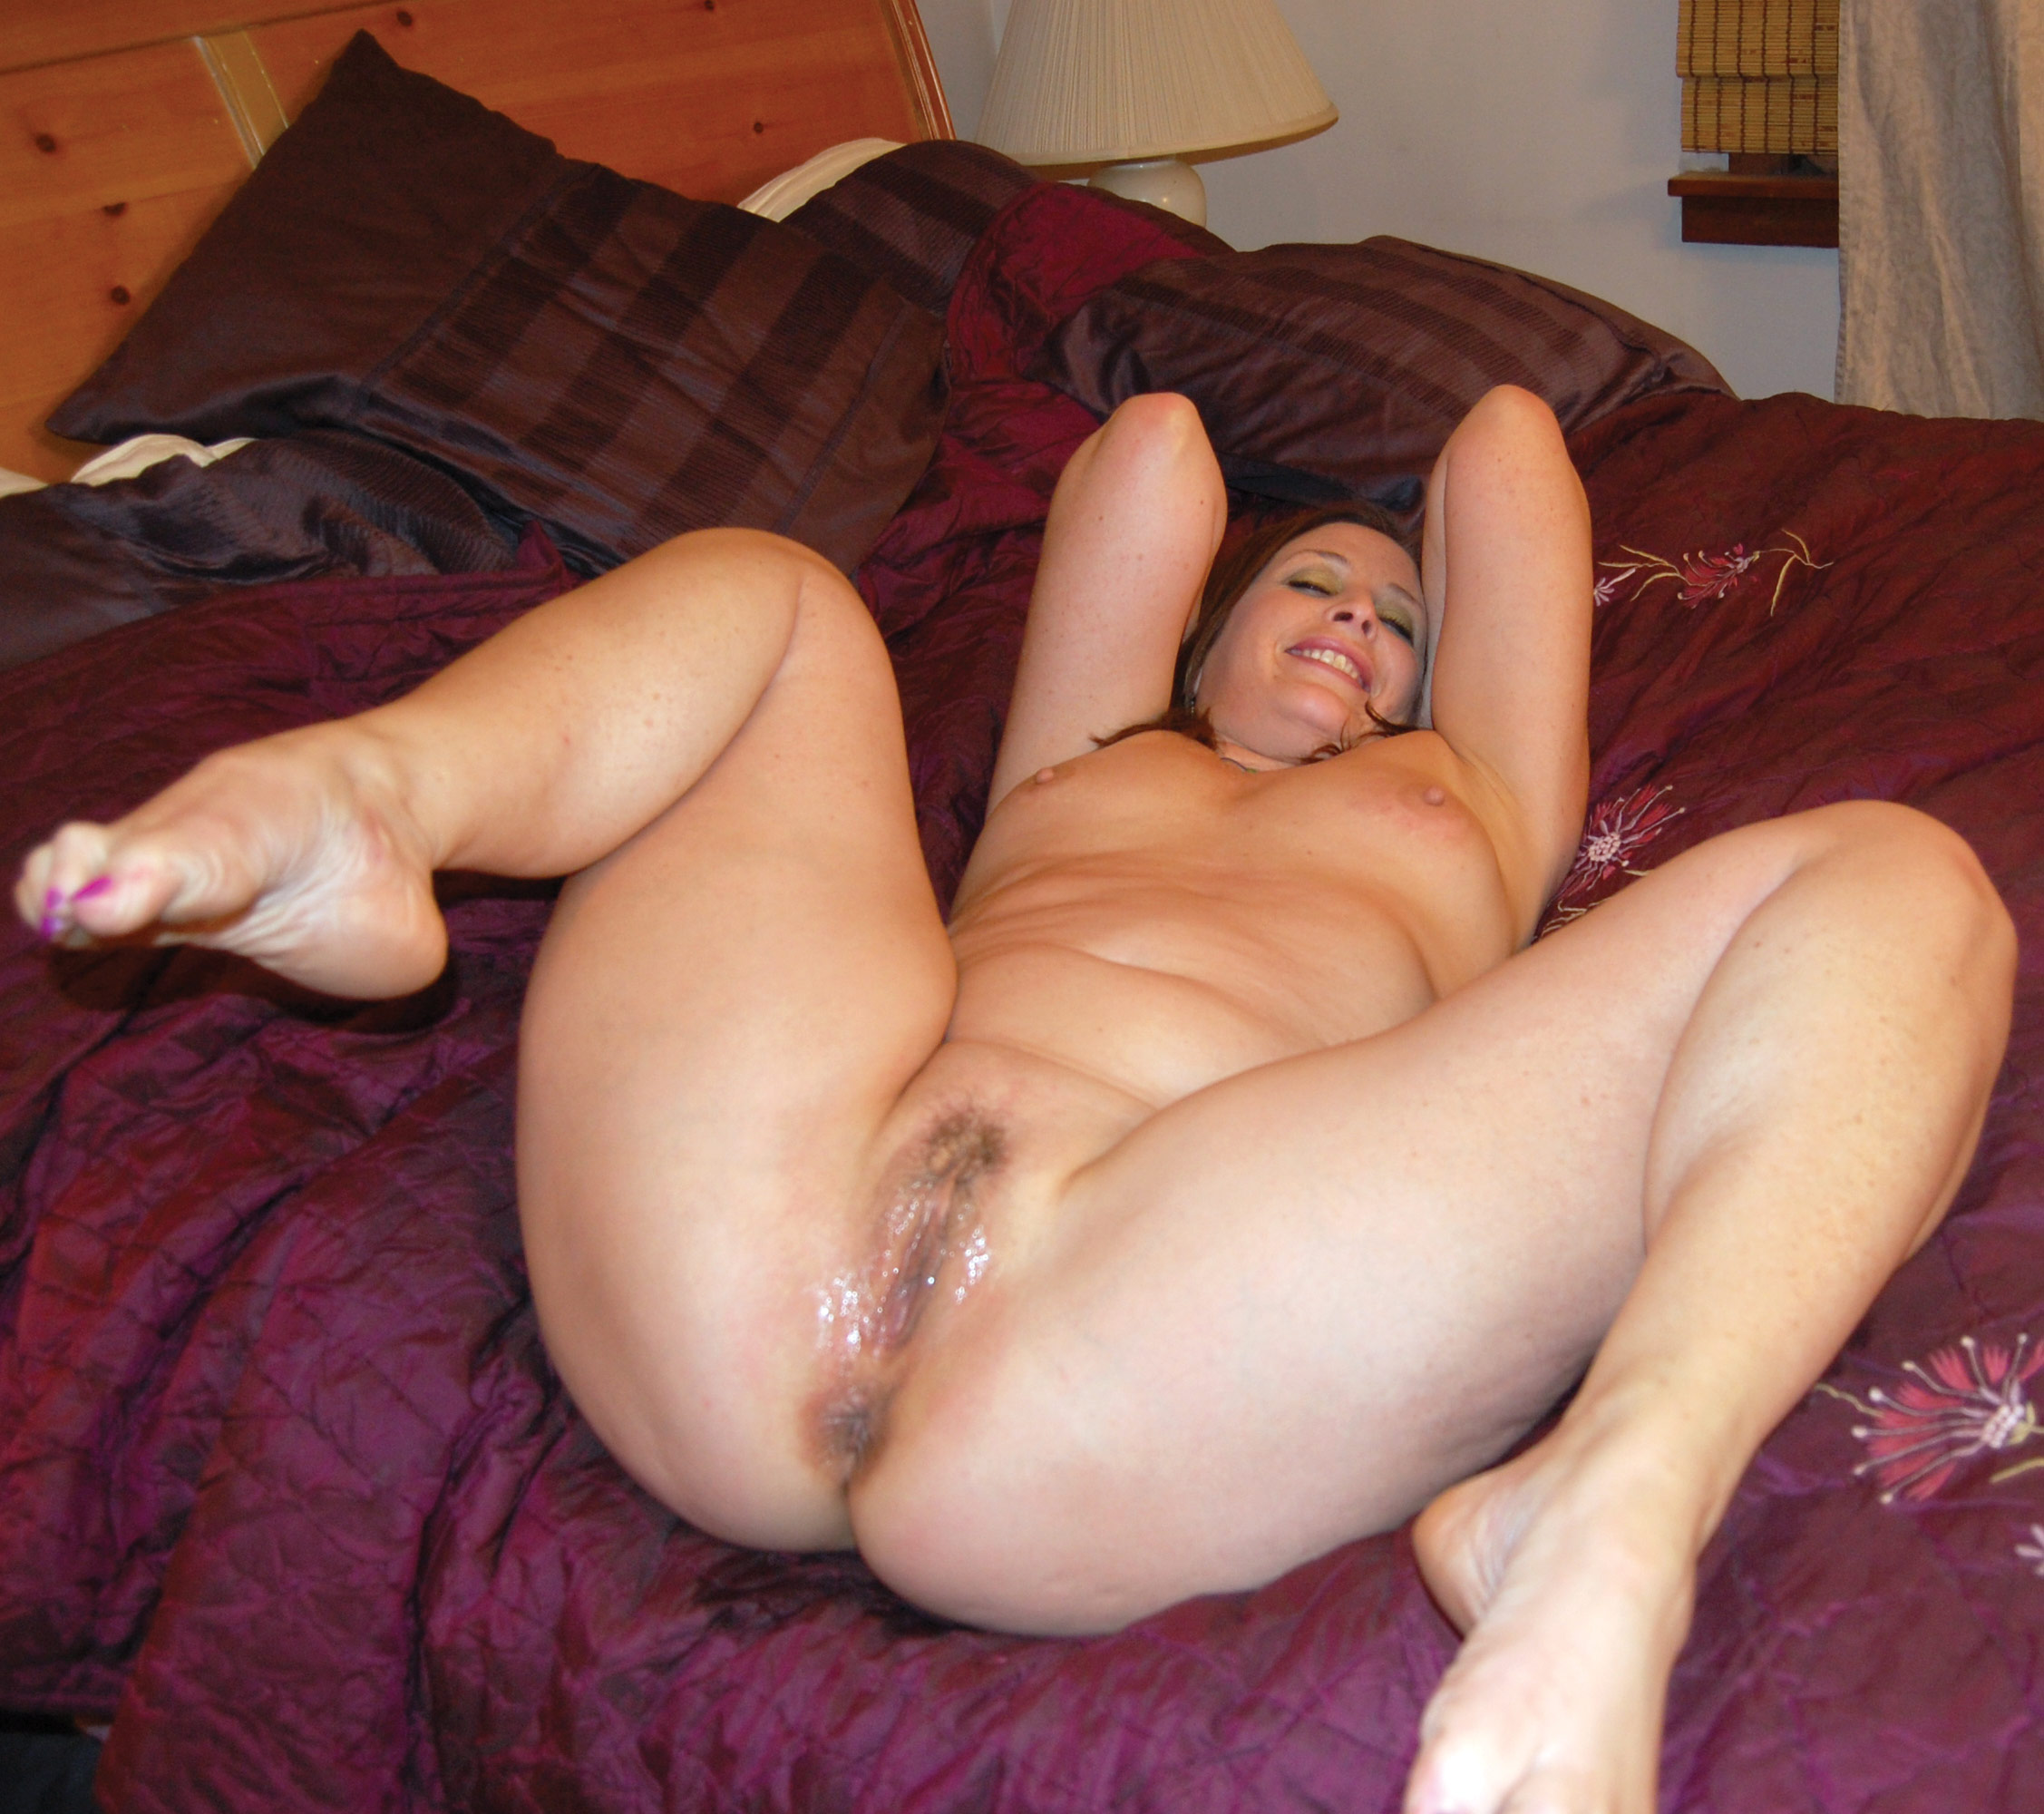 Naked chubby amateur spreads to show the goods